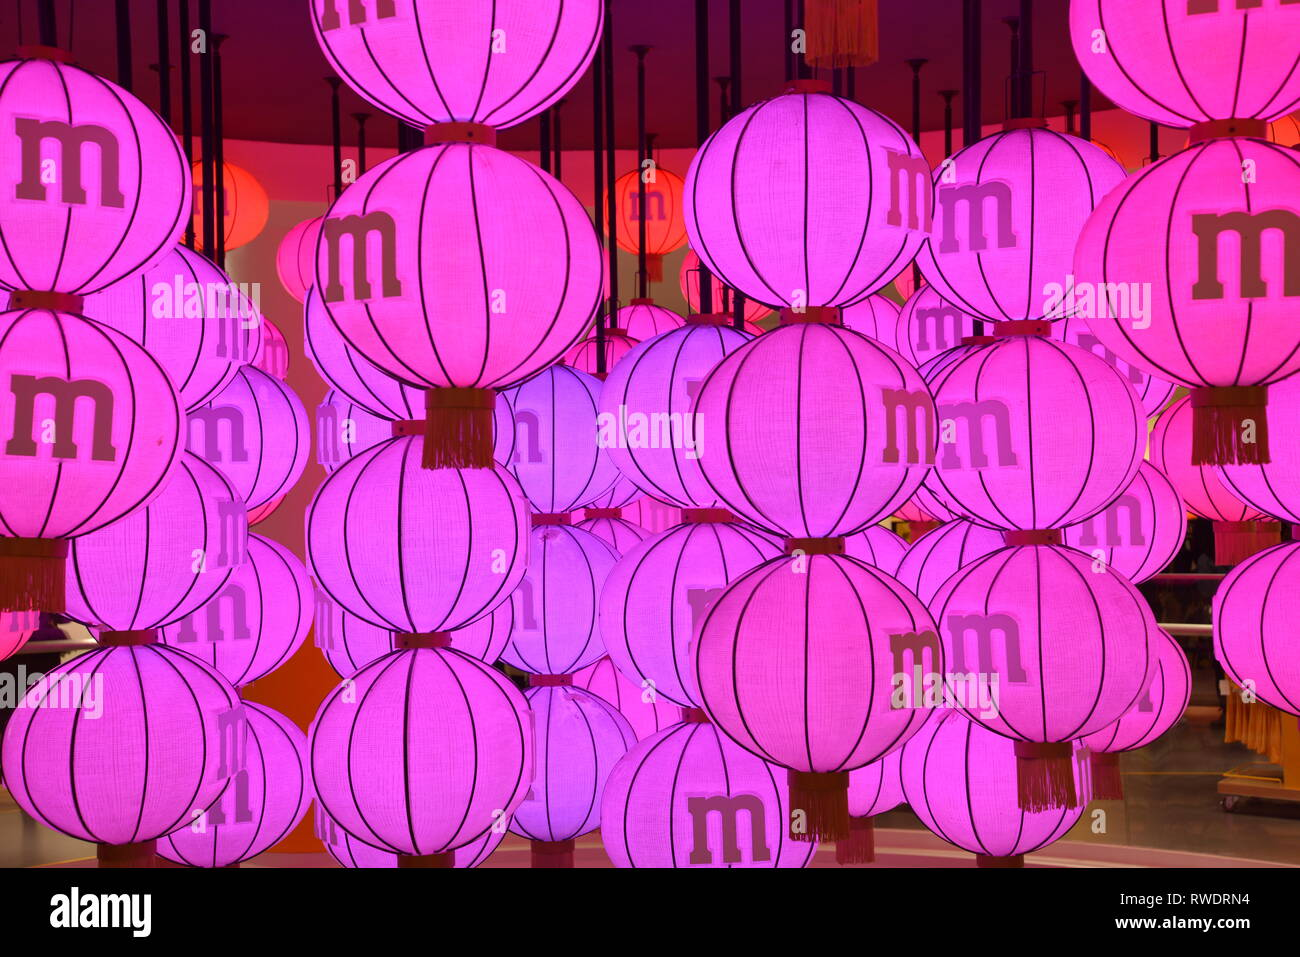 Chinese traditional lantern in M&M'S store in Shanghai, China - Stock Image